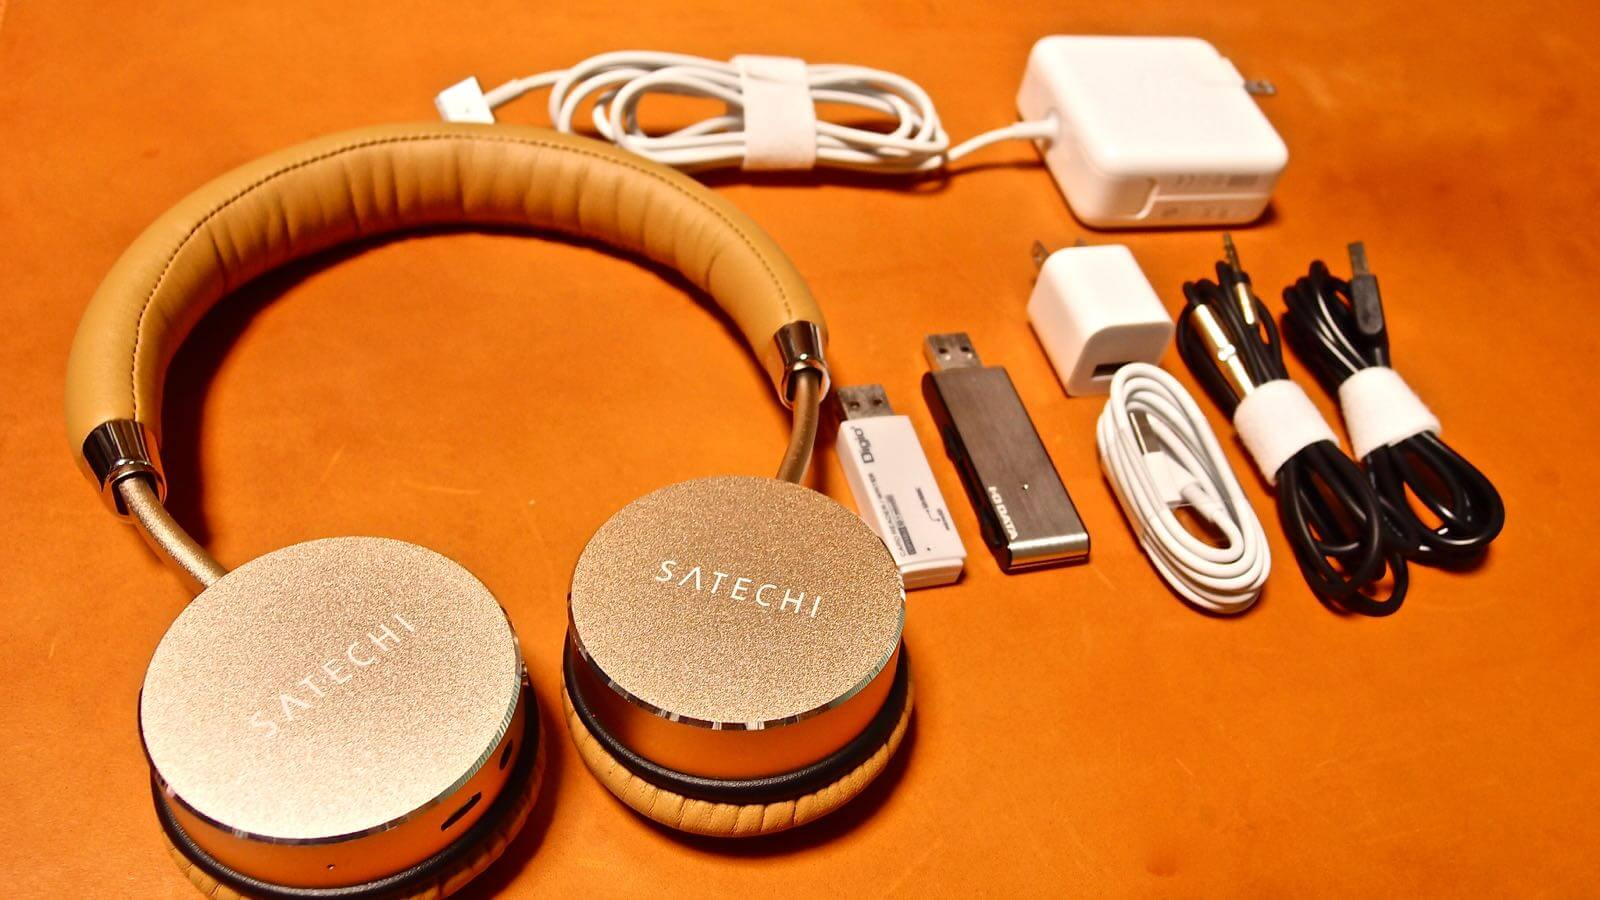 0159 Satechi s Headphones Hard Case Review 09